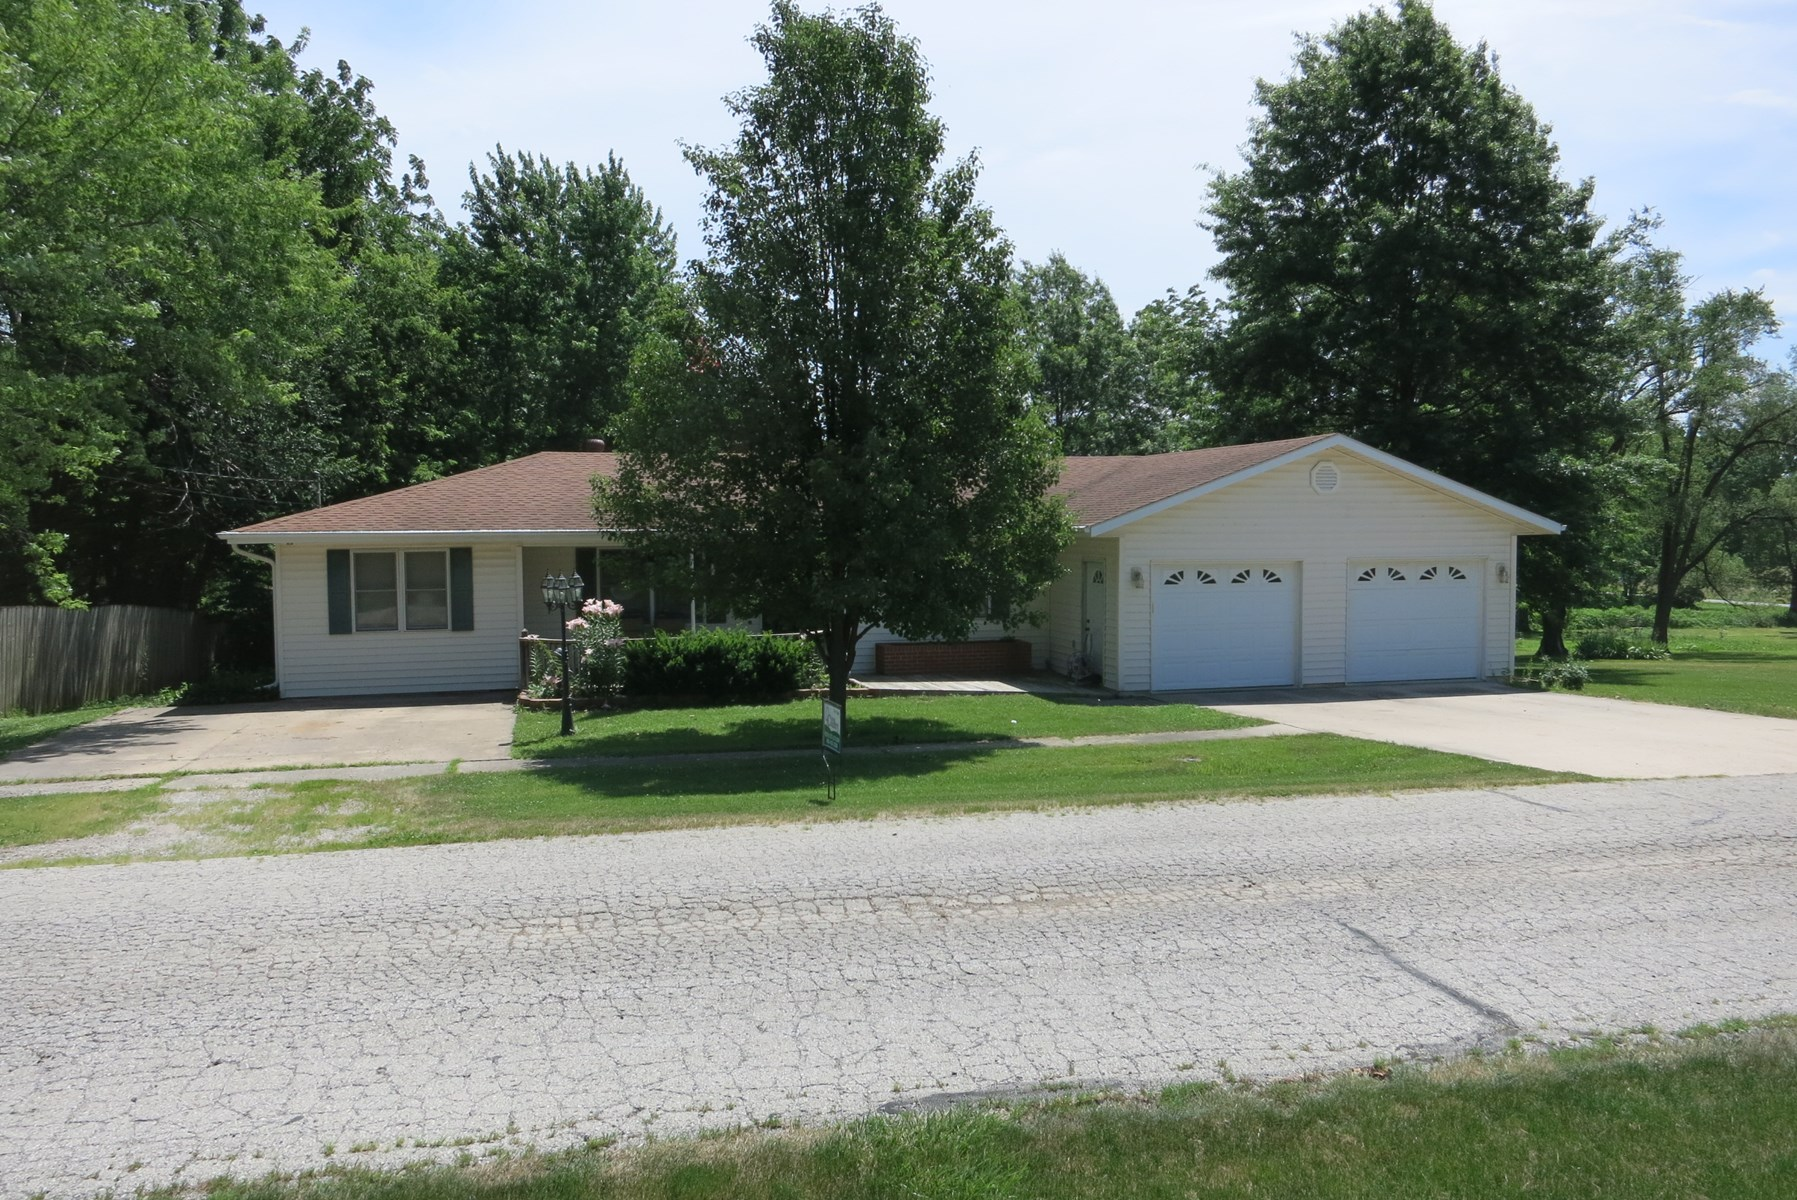 Ranch Home For Sale in Albany Missouri